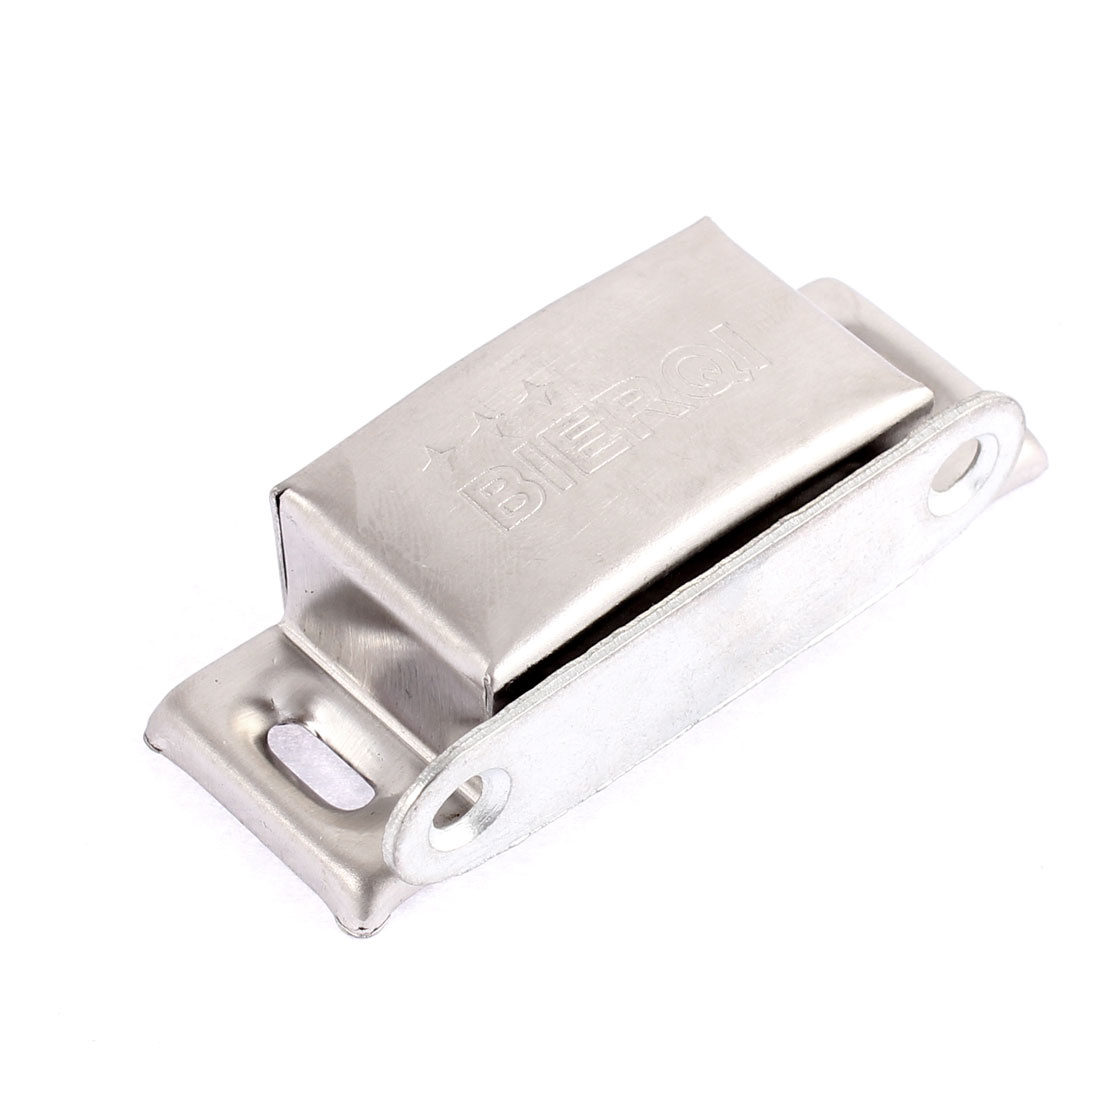 Stainless Steel Cupboard Cabinet Furniture Magnetic Catch Door Latch 64mm x 26mm